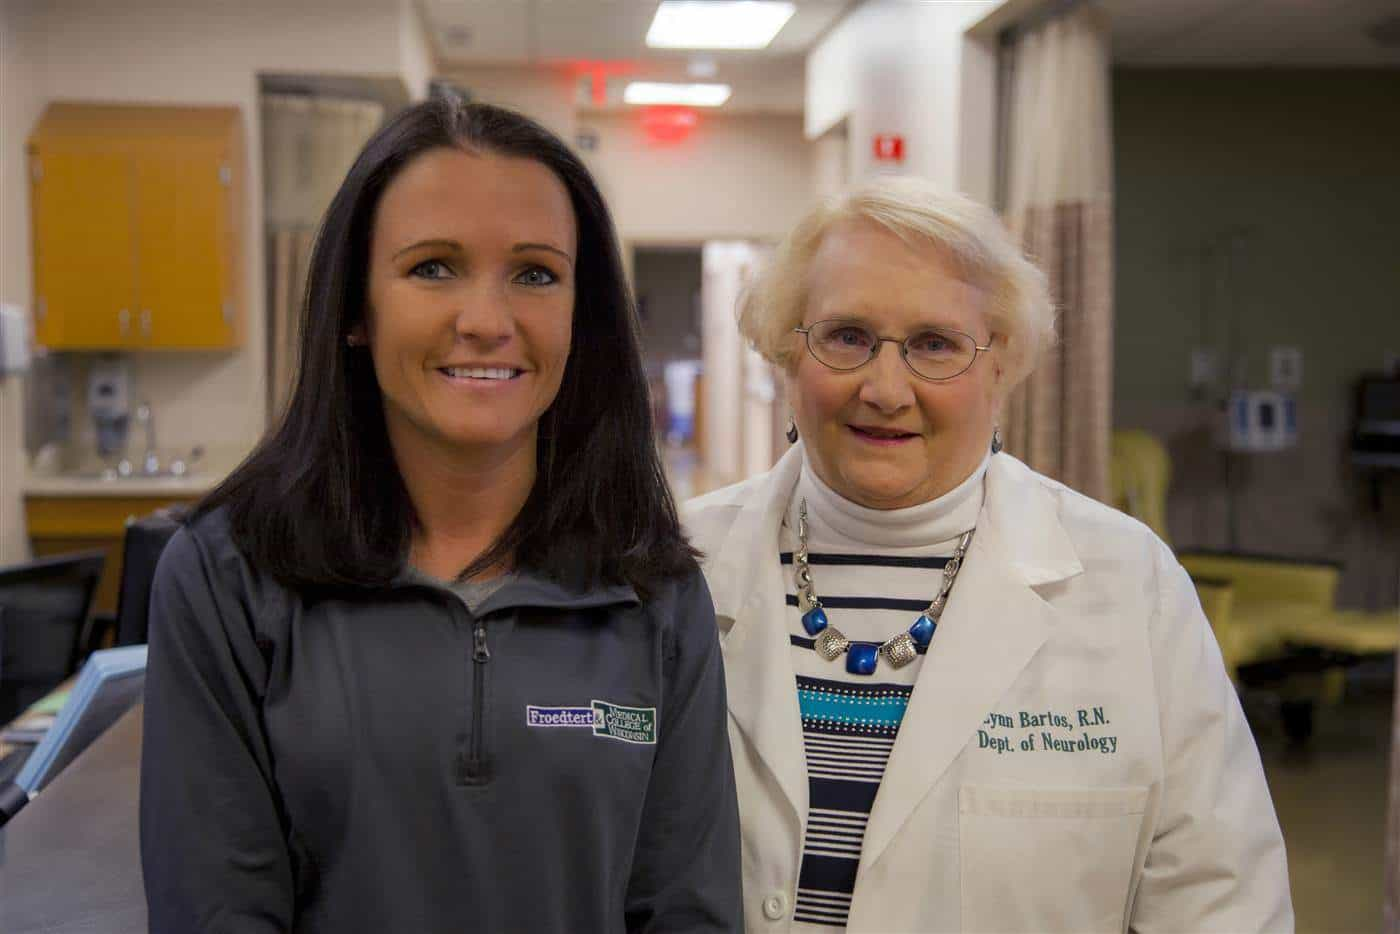 Nicole Krahn, left, and Lynn Bartos today. Both are amazed by their chance reunion. (Courtesy Froedtert and the Medical College of Wisconsin)